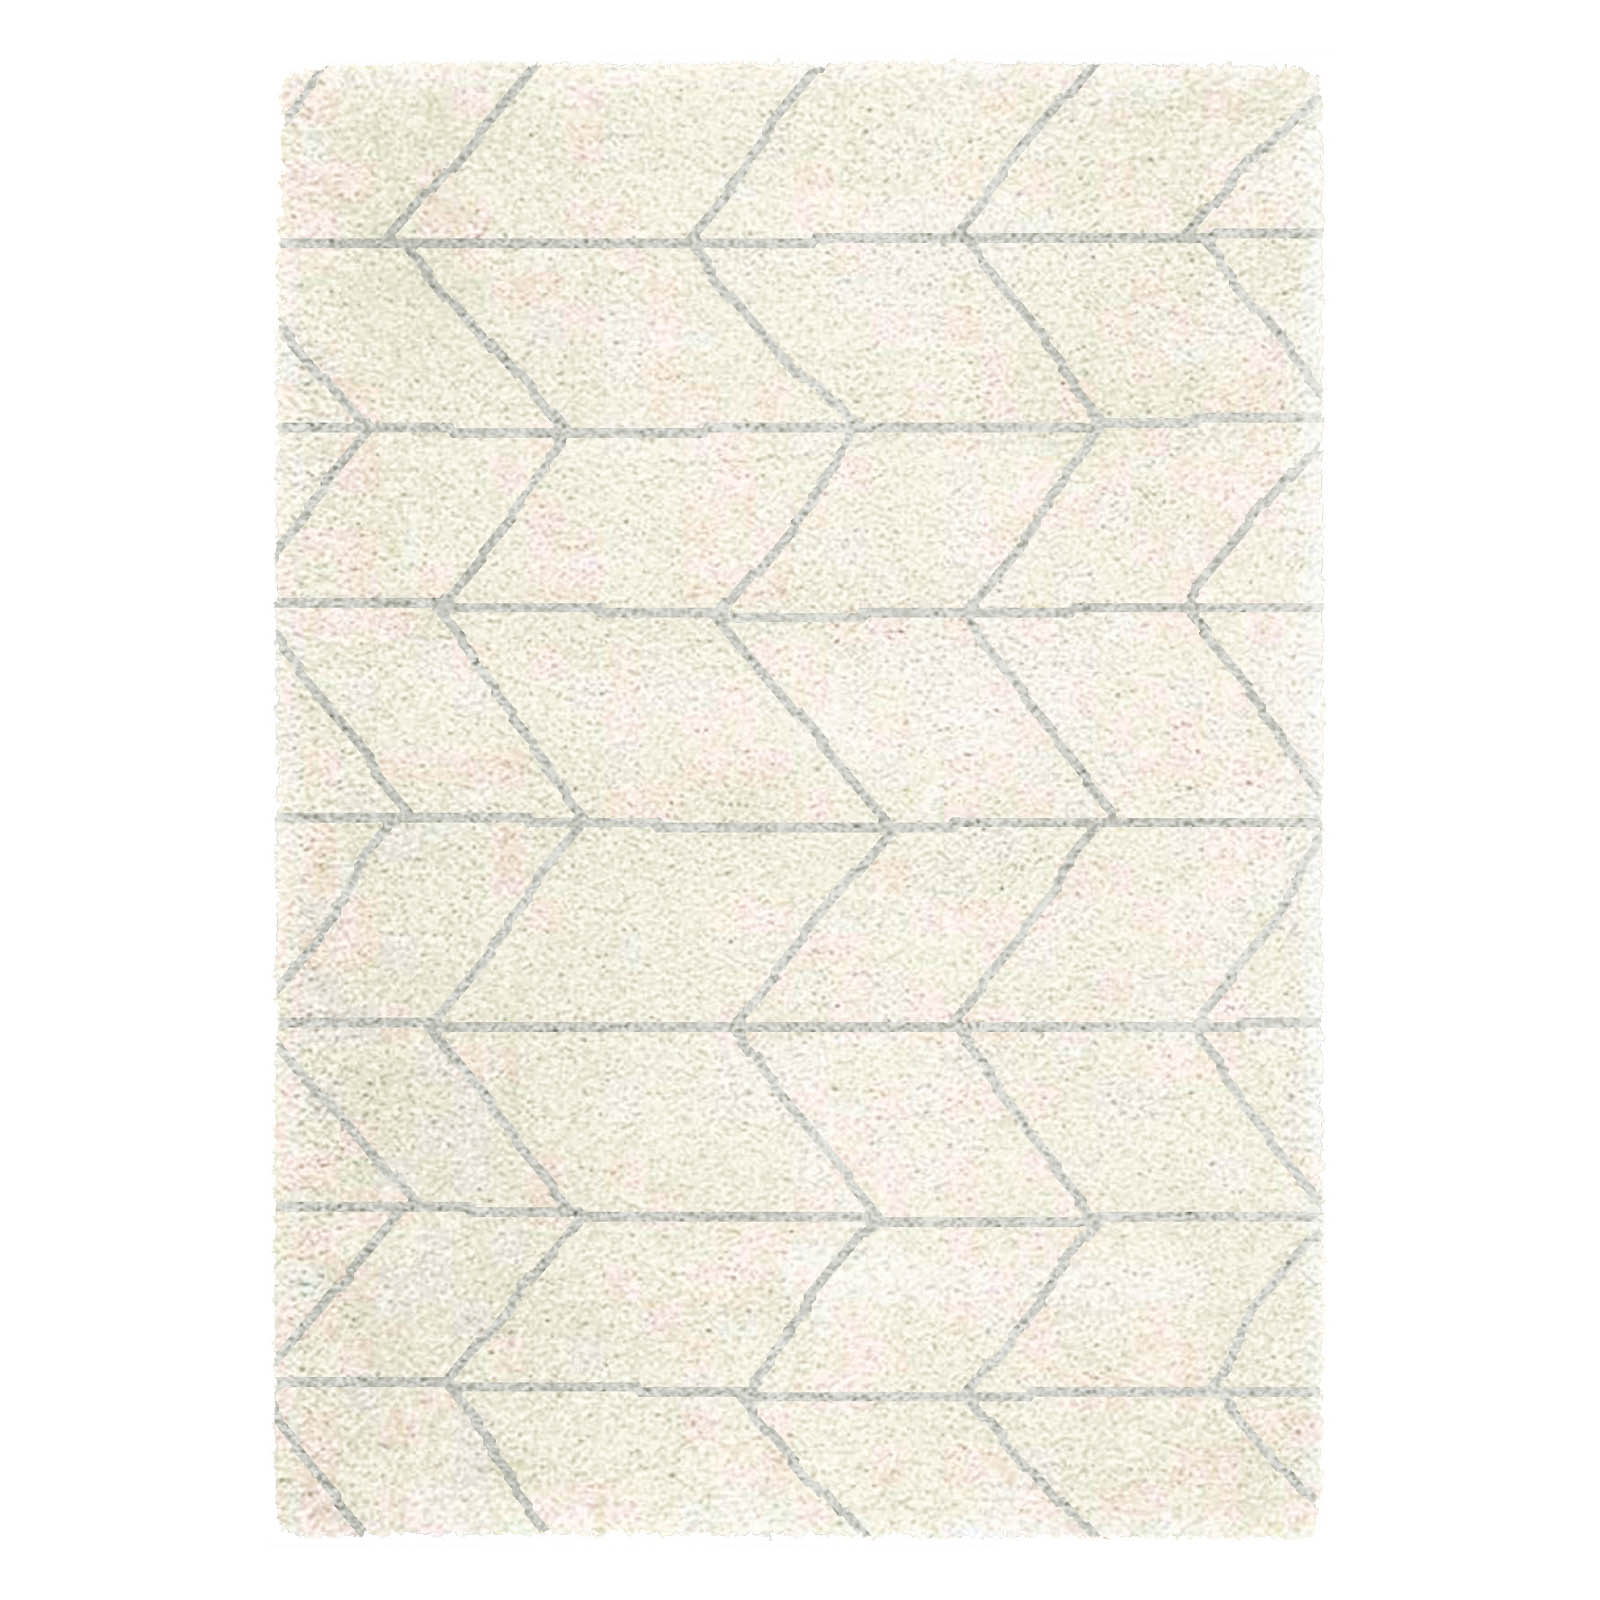 Logan Rugs LG02 in Cream and Grey